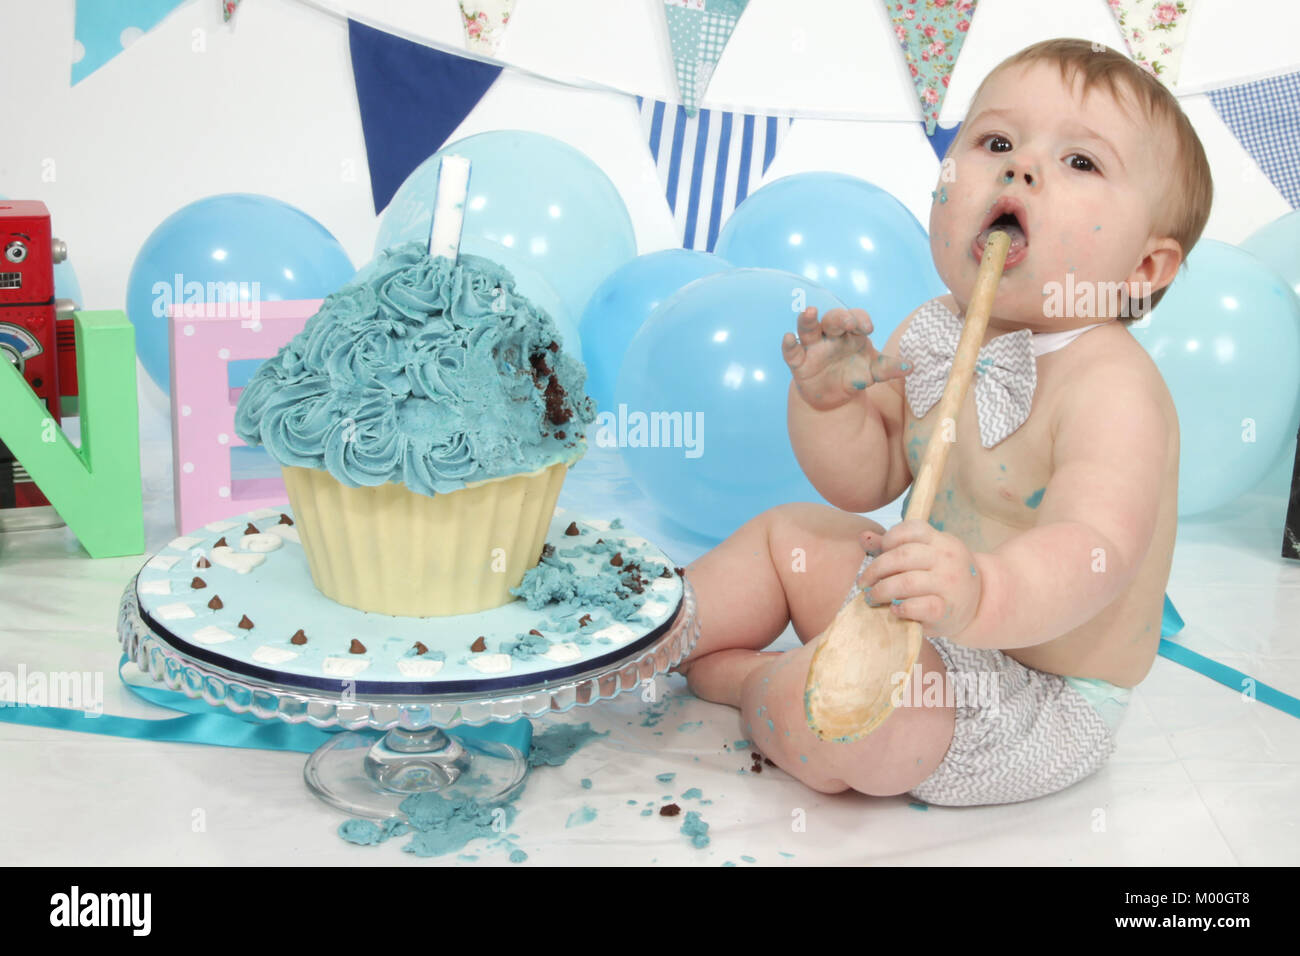 1 Year Old Boy Birthday Party Cake Smash Fun Food Stock